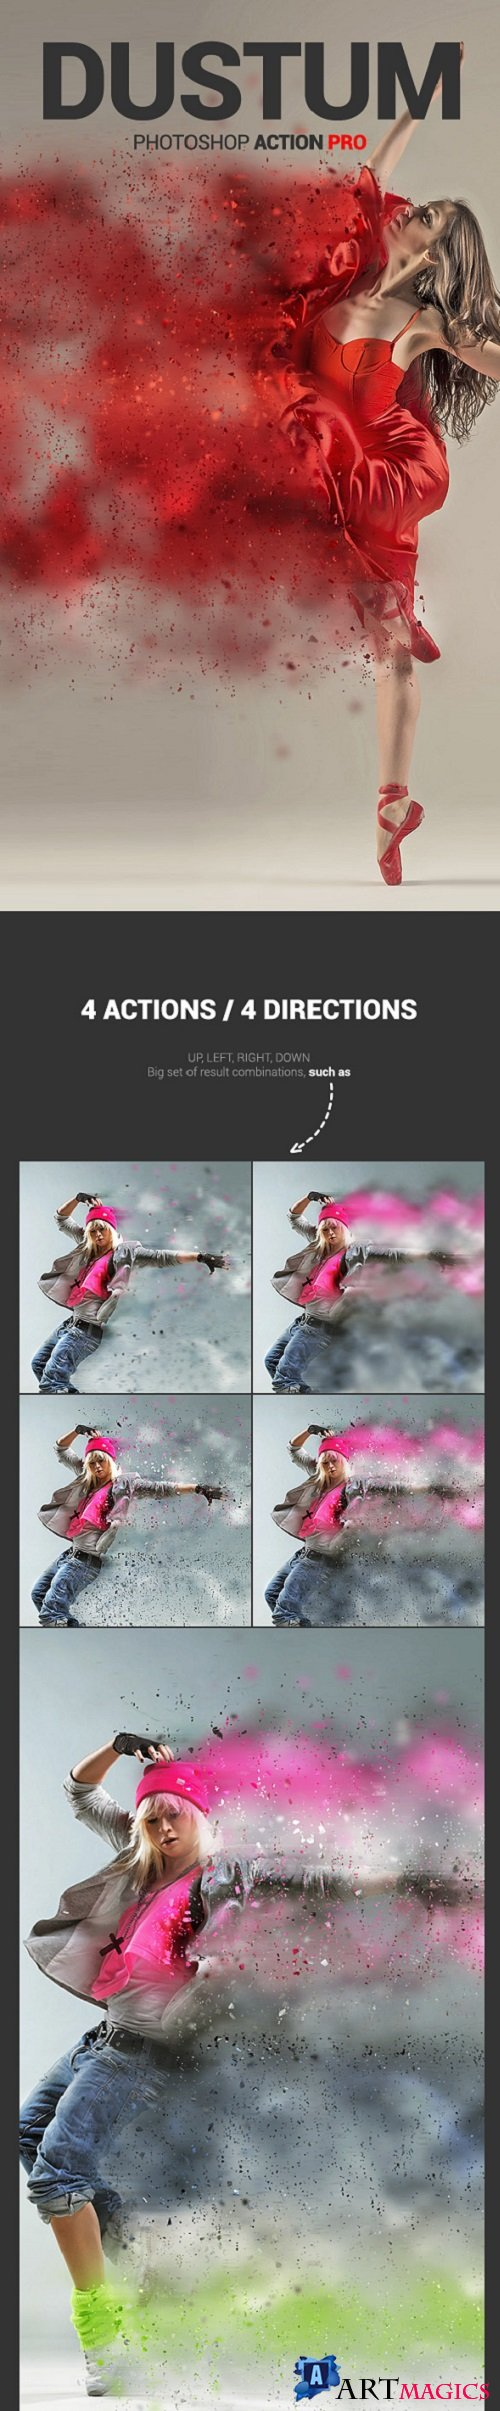 Dustum – Sandstorm Photoshop Action - 11589536